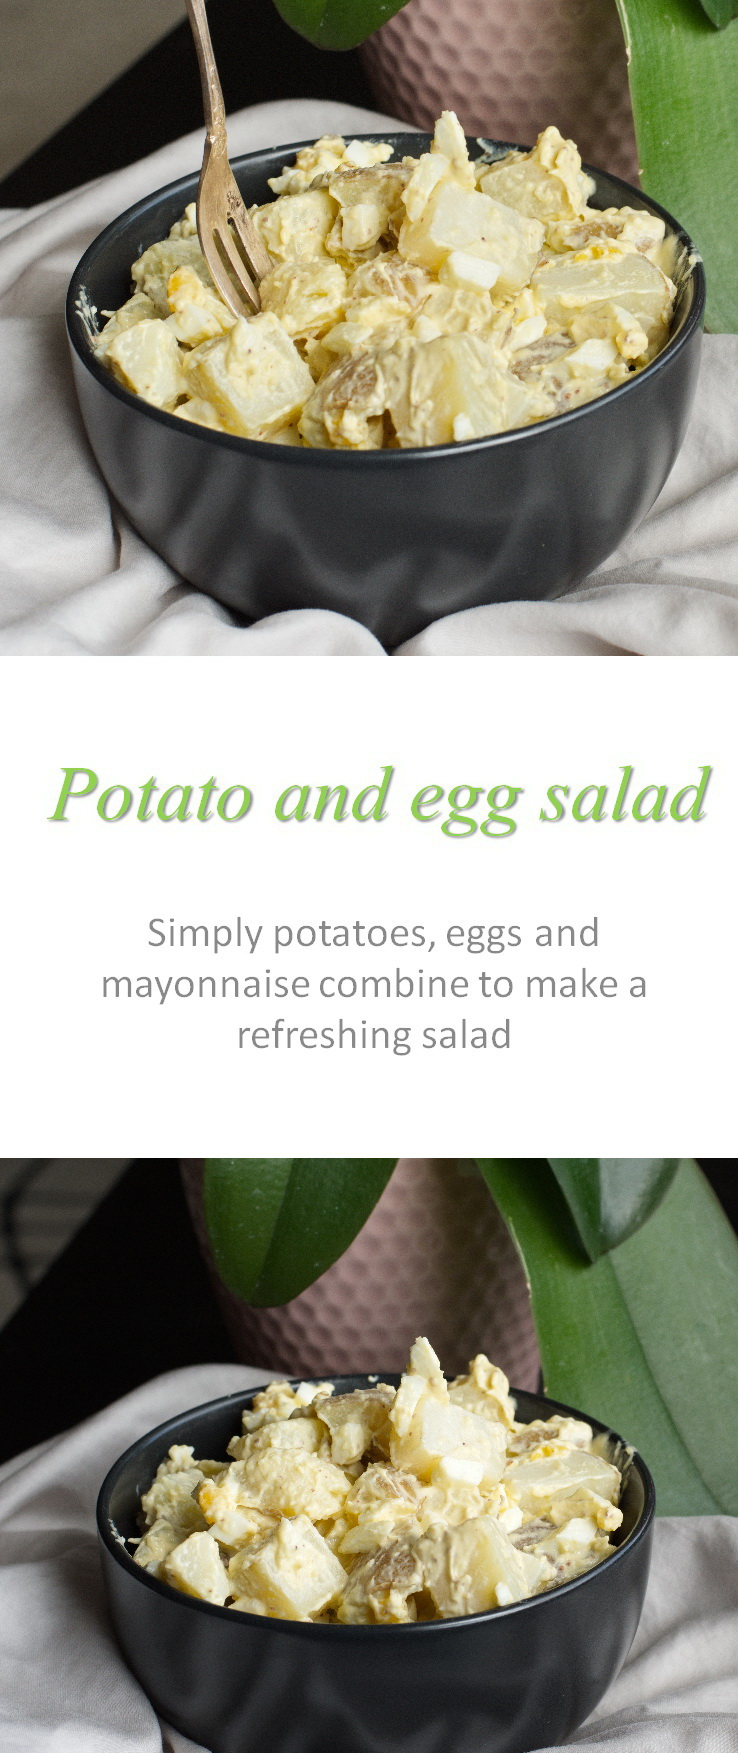 Simple but tasty potato egg salad that anyone can make - make it easy for yourself and make this salad for any occasion! #potatosalad #cookathome #glutenfree #dairyfree